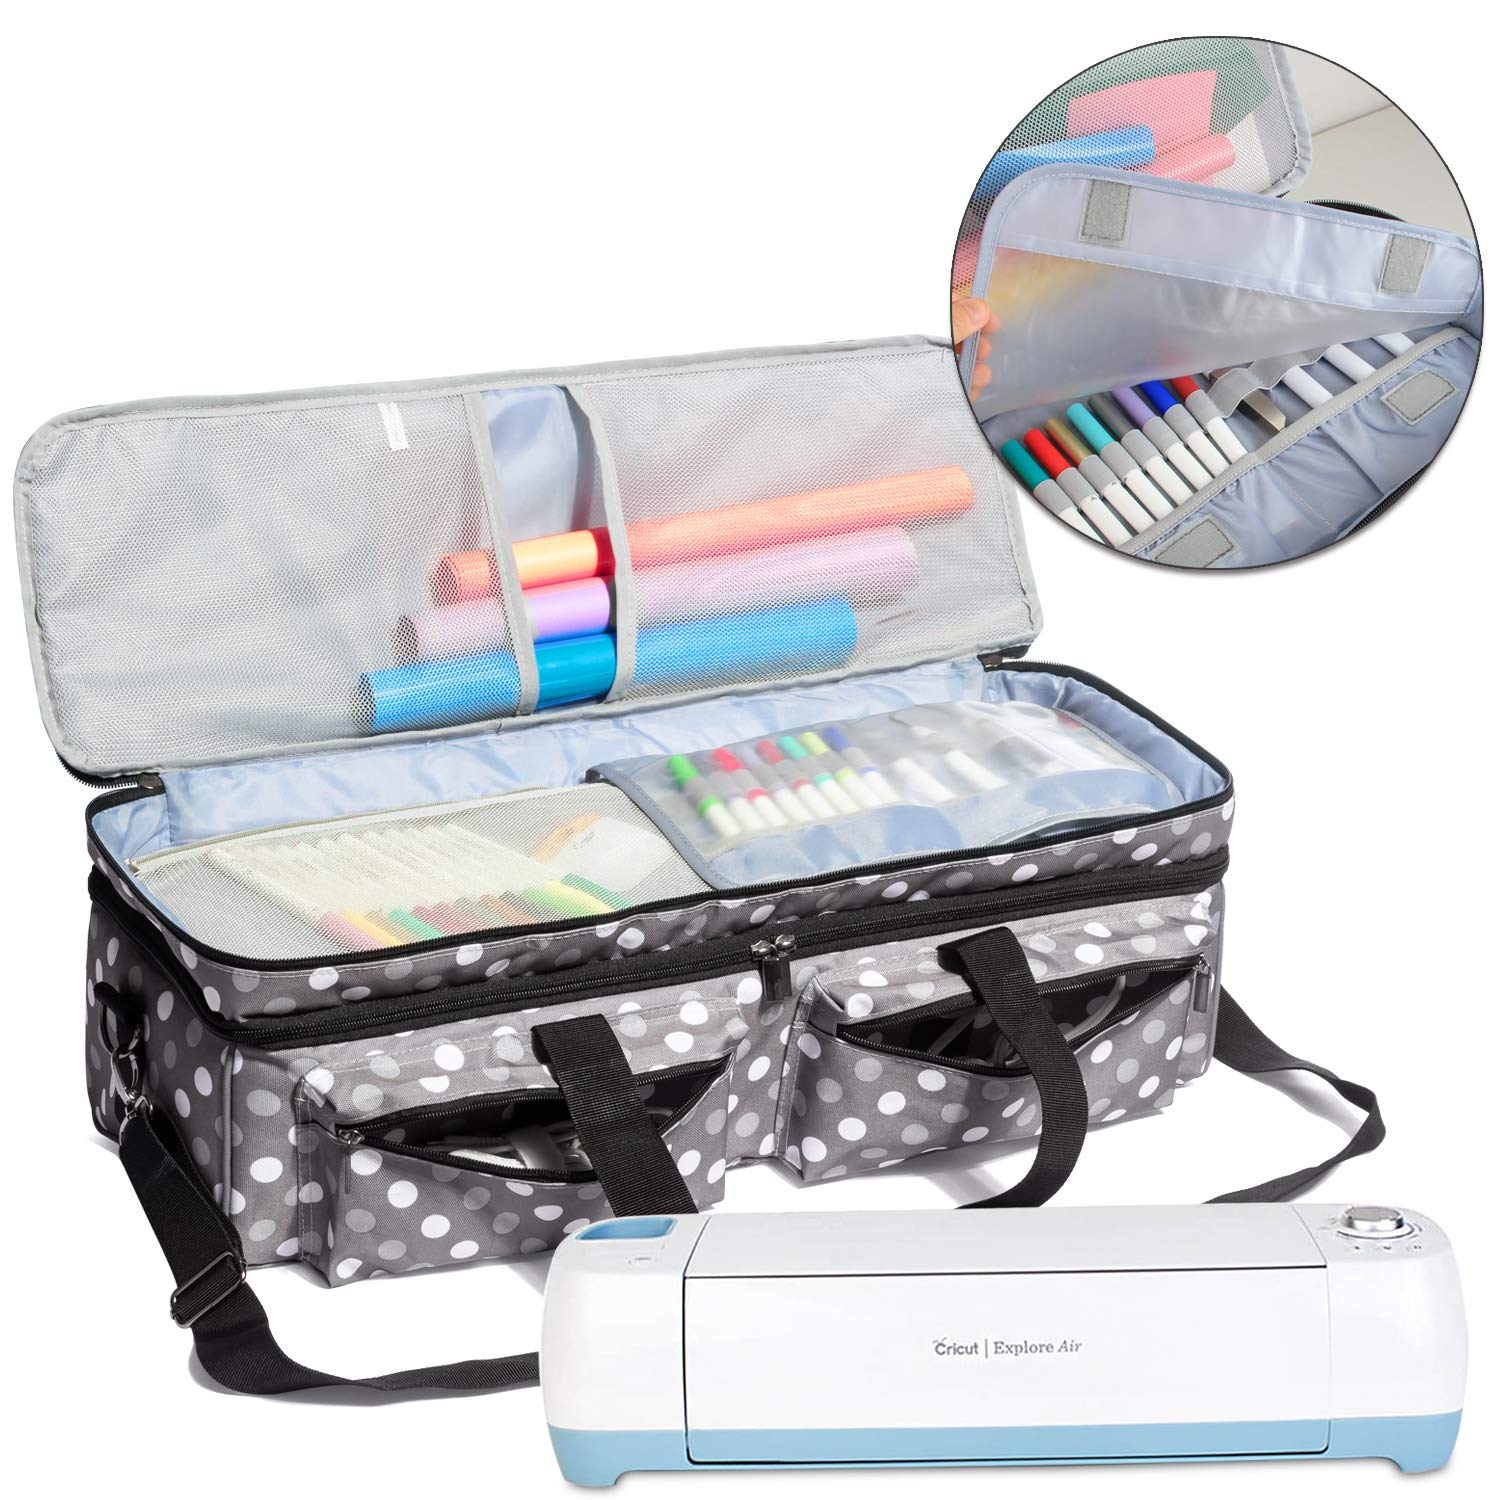 Luxja Double-Layer Bag Compatible with Cricut Explore Air (Air2) and Maker, Carrying Bag Compatible with Cricut Die-Cut Machine and Supplies (Bag Only, Patent Pending), Gray Dots